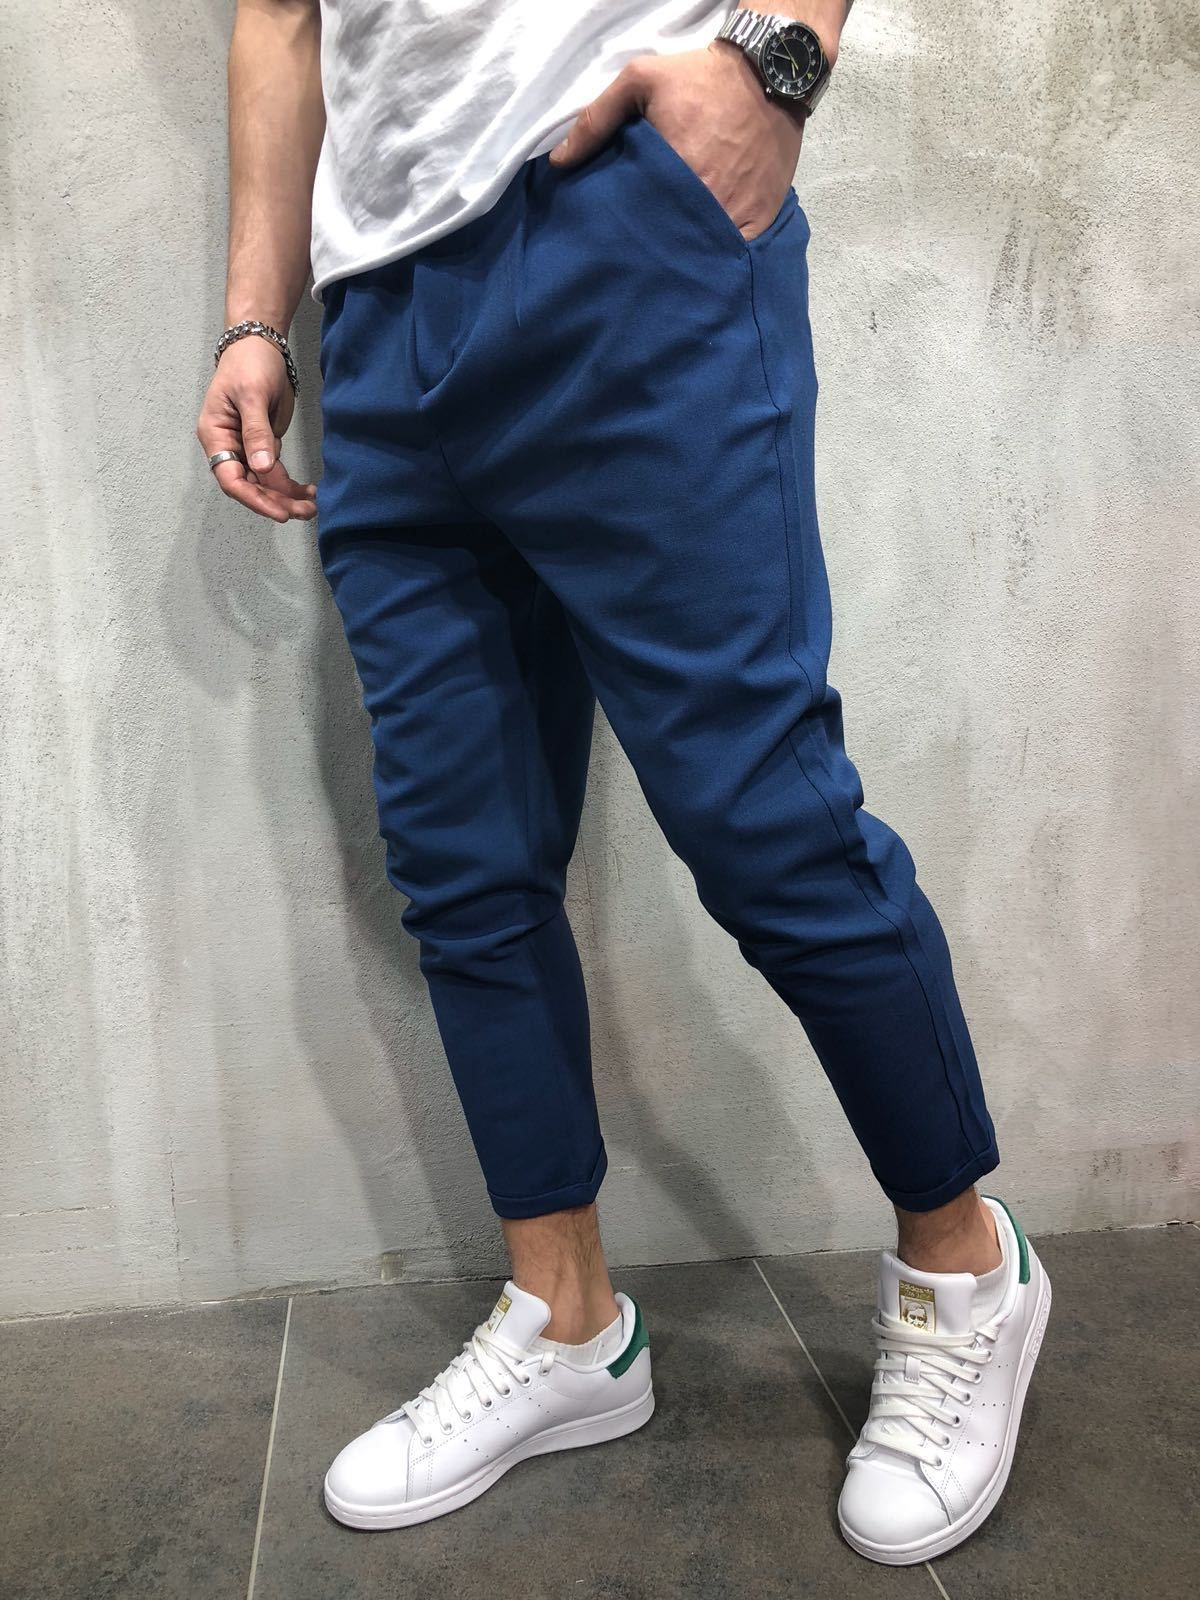 d5982bb0df9f Premium ankle pants for your next outfit! Available in 6 Colors Black Dark  gray Blue Cream Light gray White Looks great with a casual T-shirt and  sneakers ...